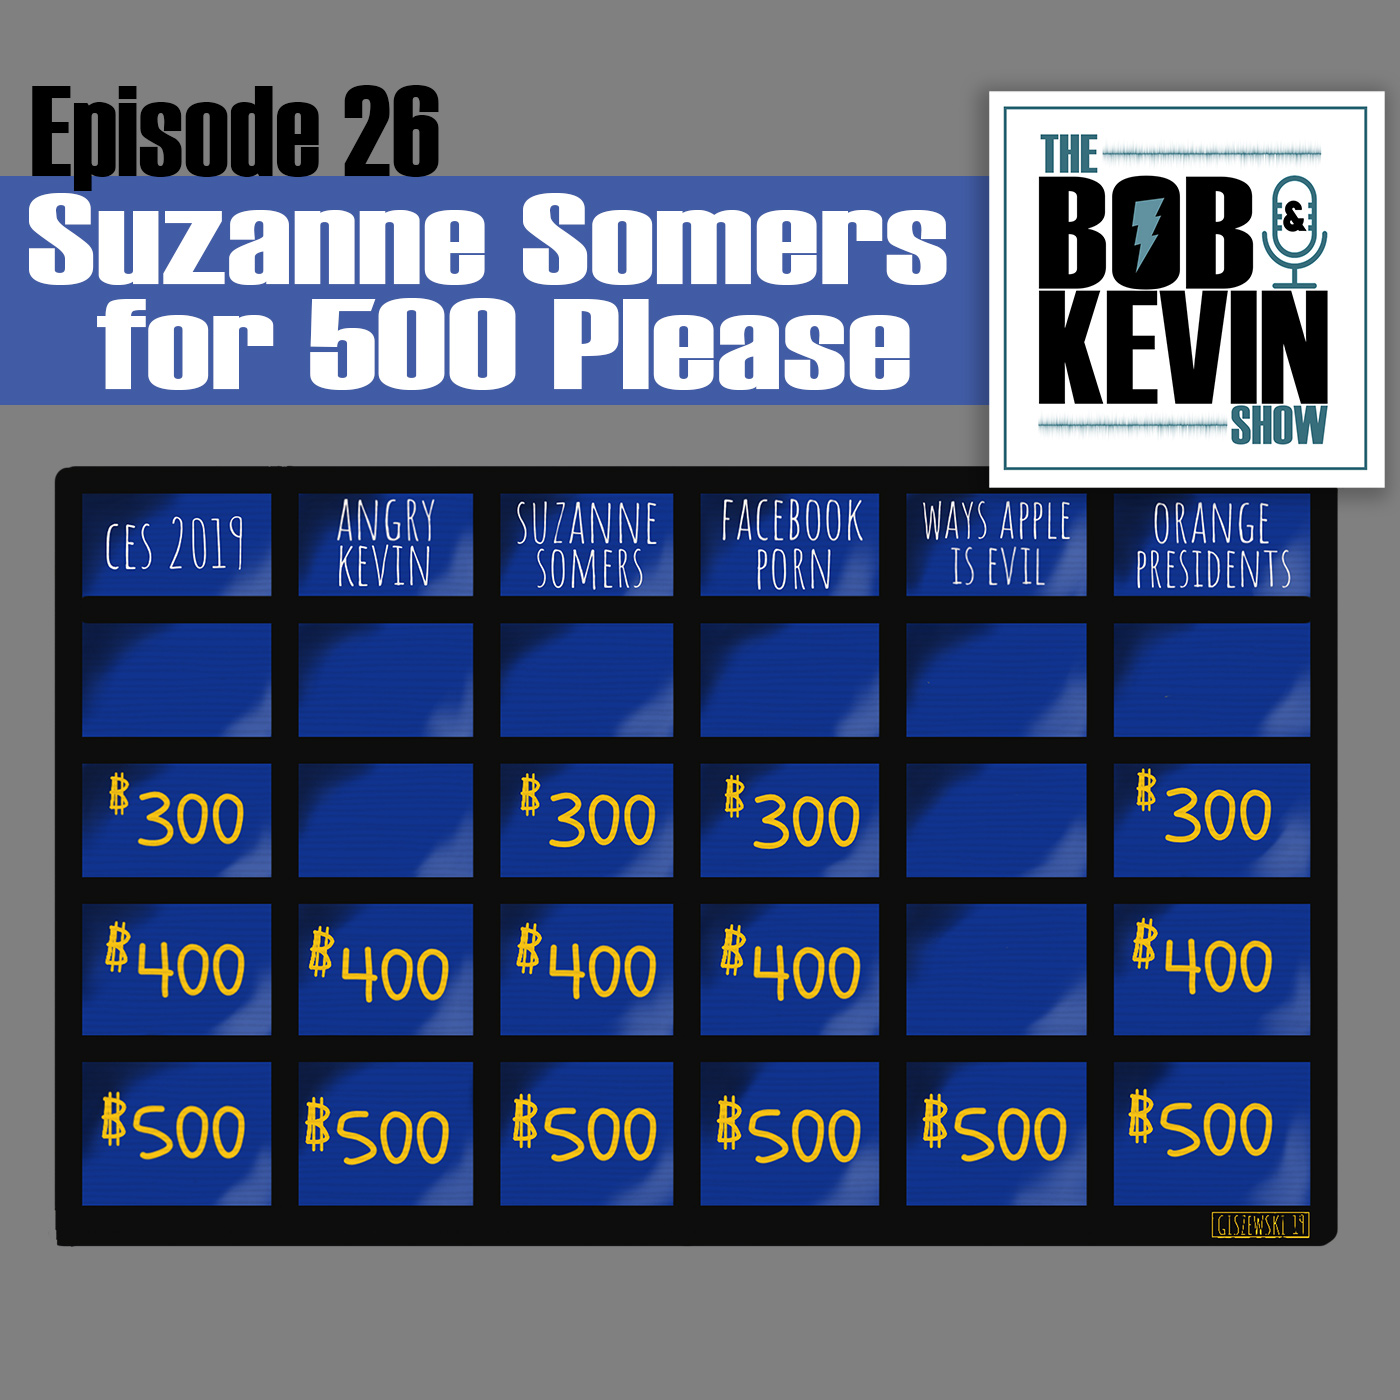 Ep. 026 - Suzanne Somers for 500 Please